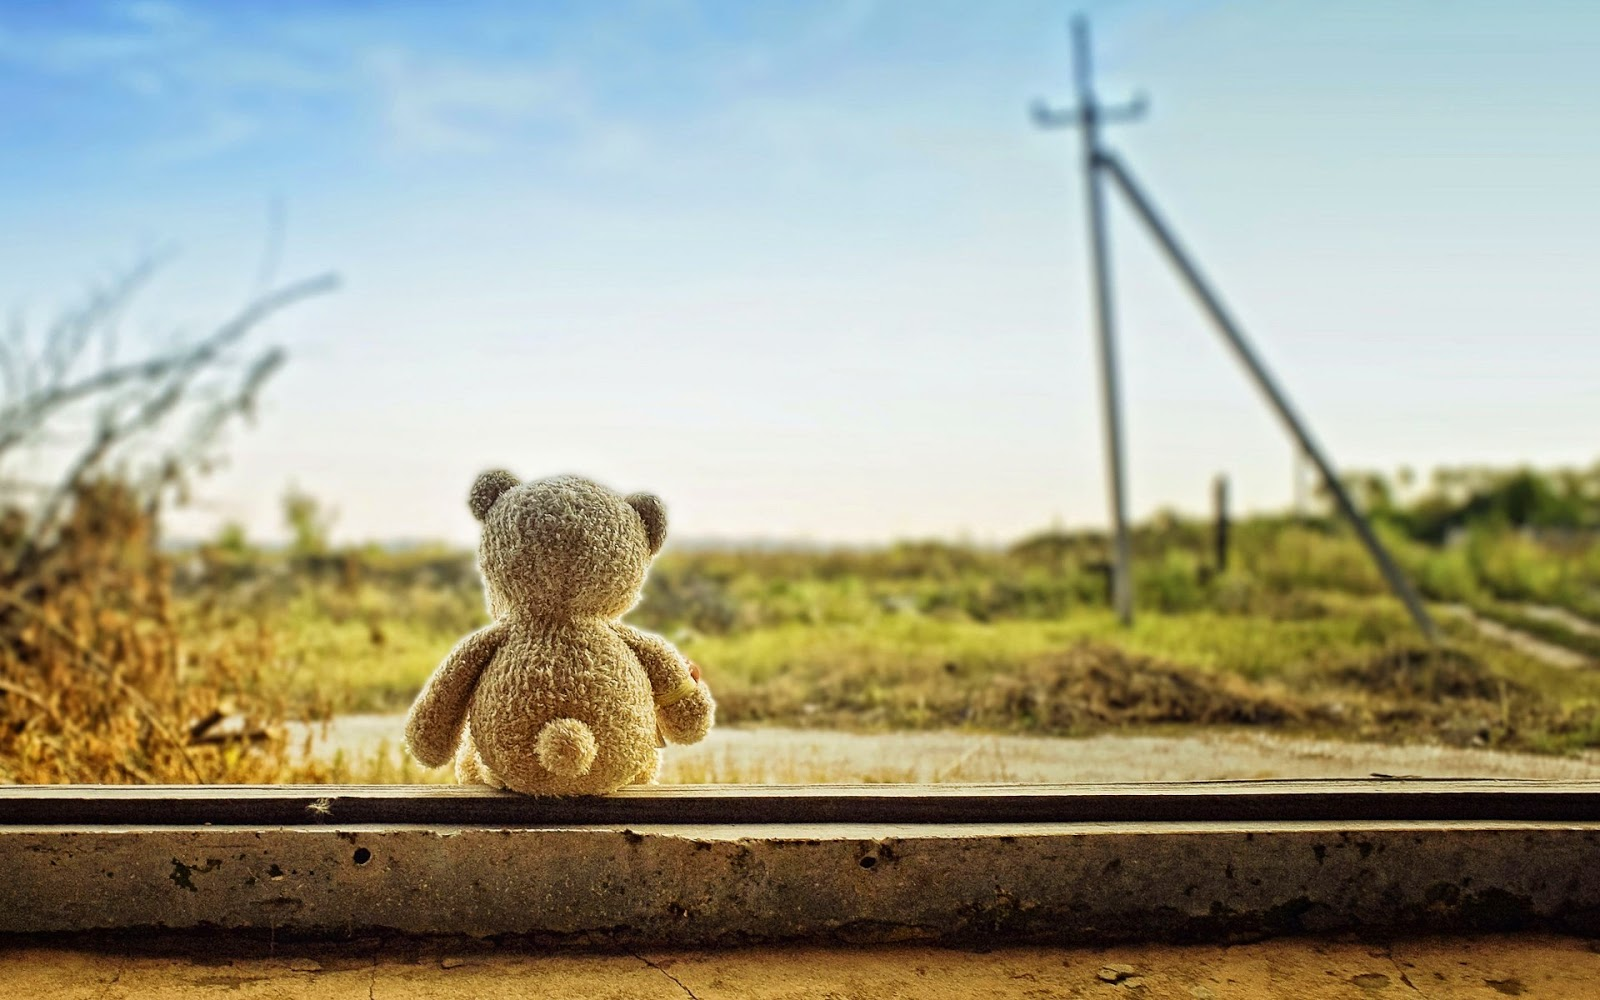 Teddy-bear-left-alone-feeling-lonely-sad-image-HD.jpg